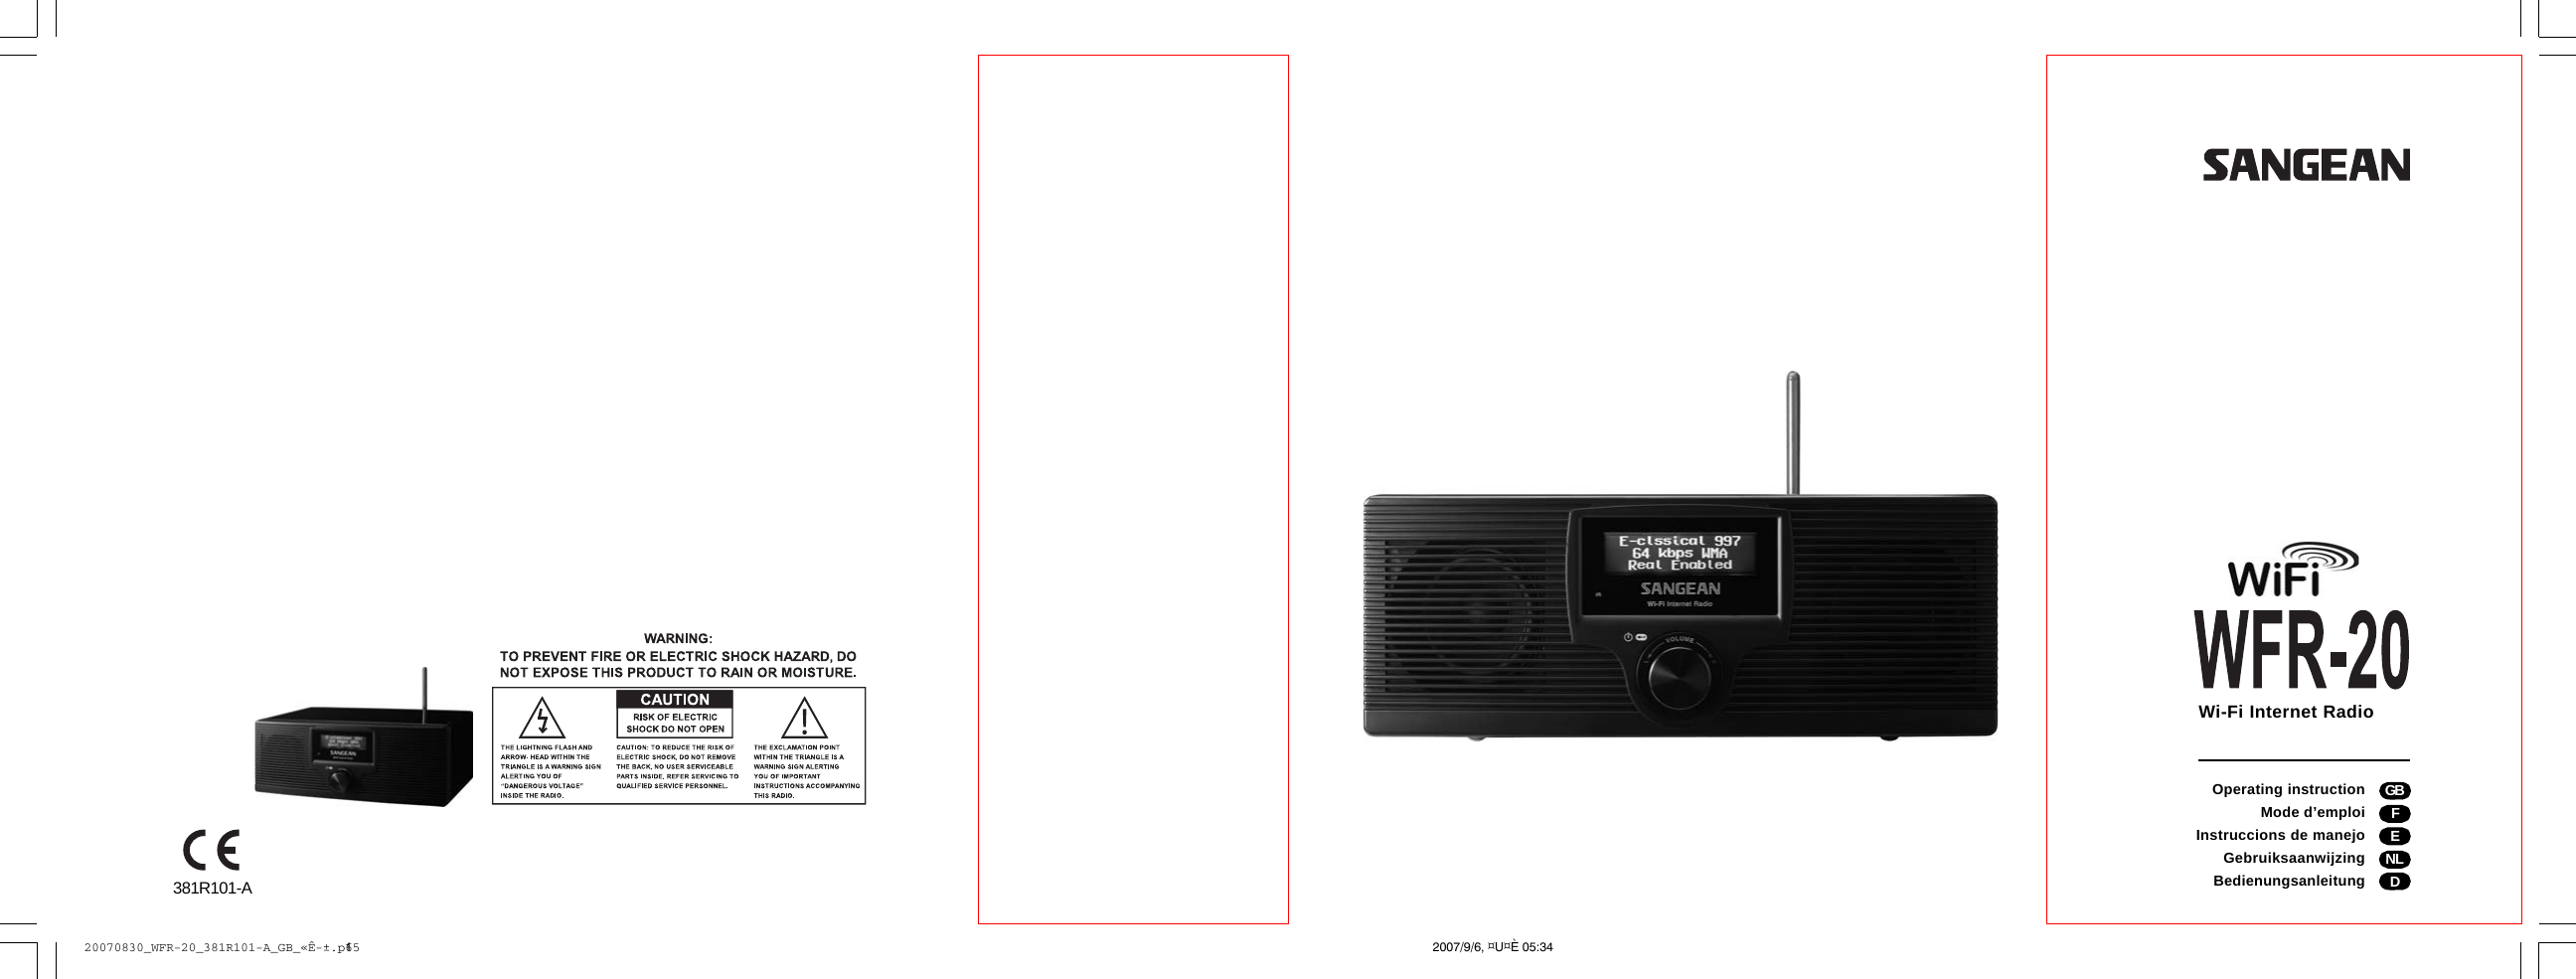 sangean electronics 010 internet radio user manual 20070830 wfr 20 rh usermanual wiki Sangean HDT-1 Sangean ATS-909X